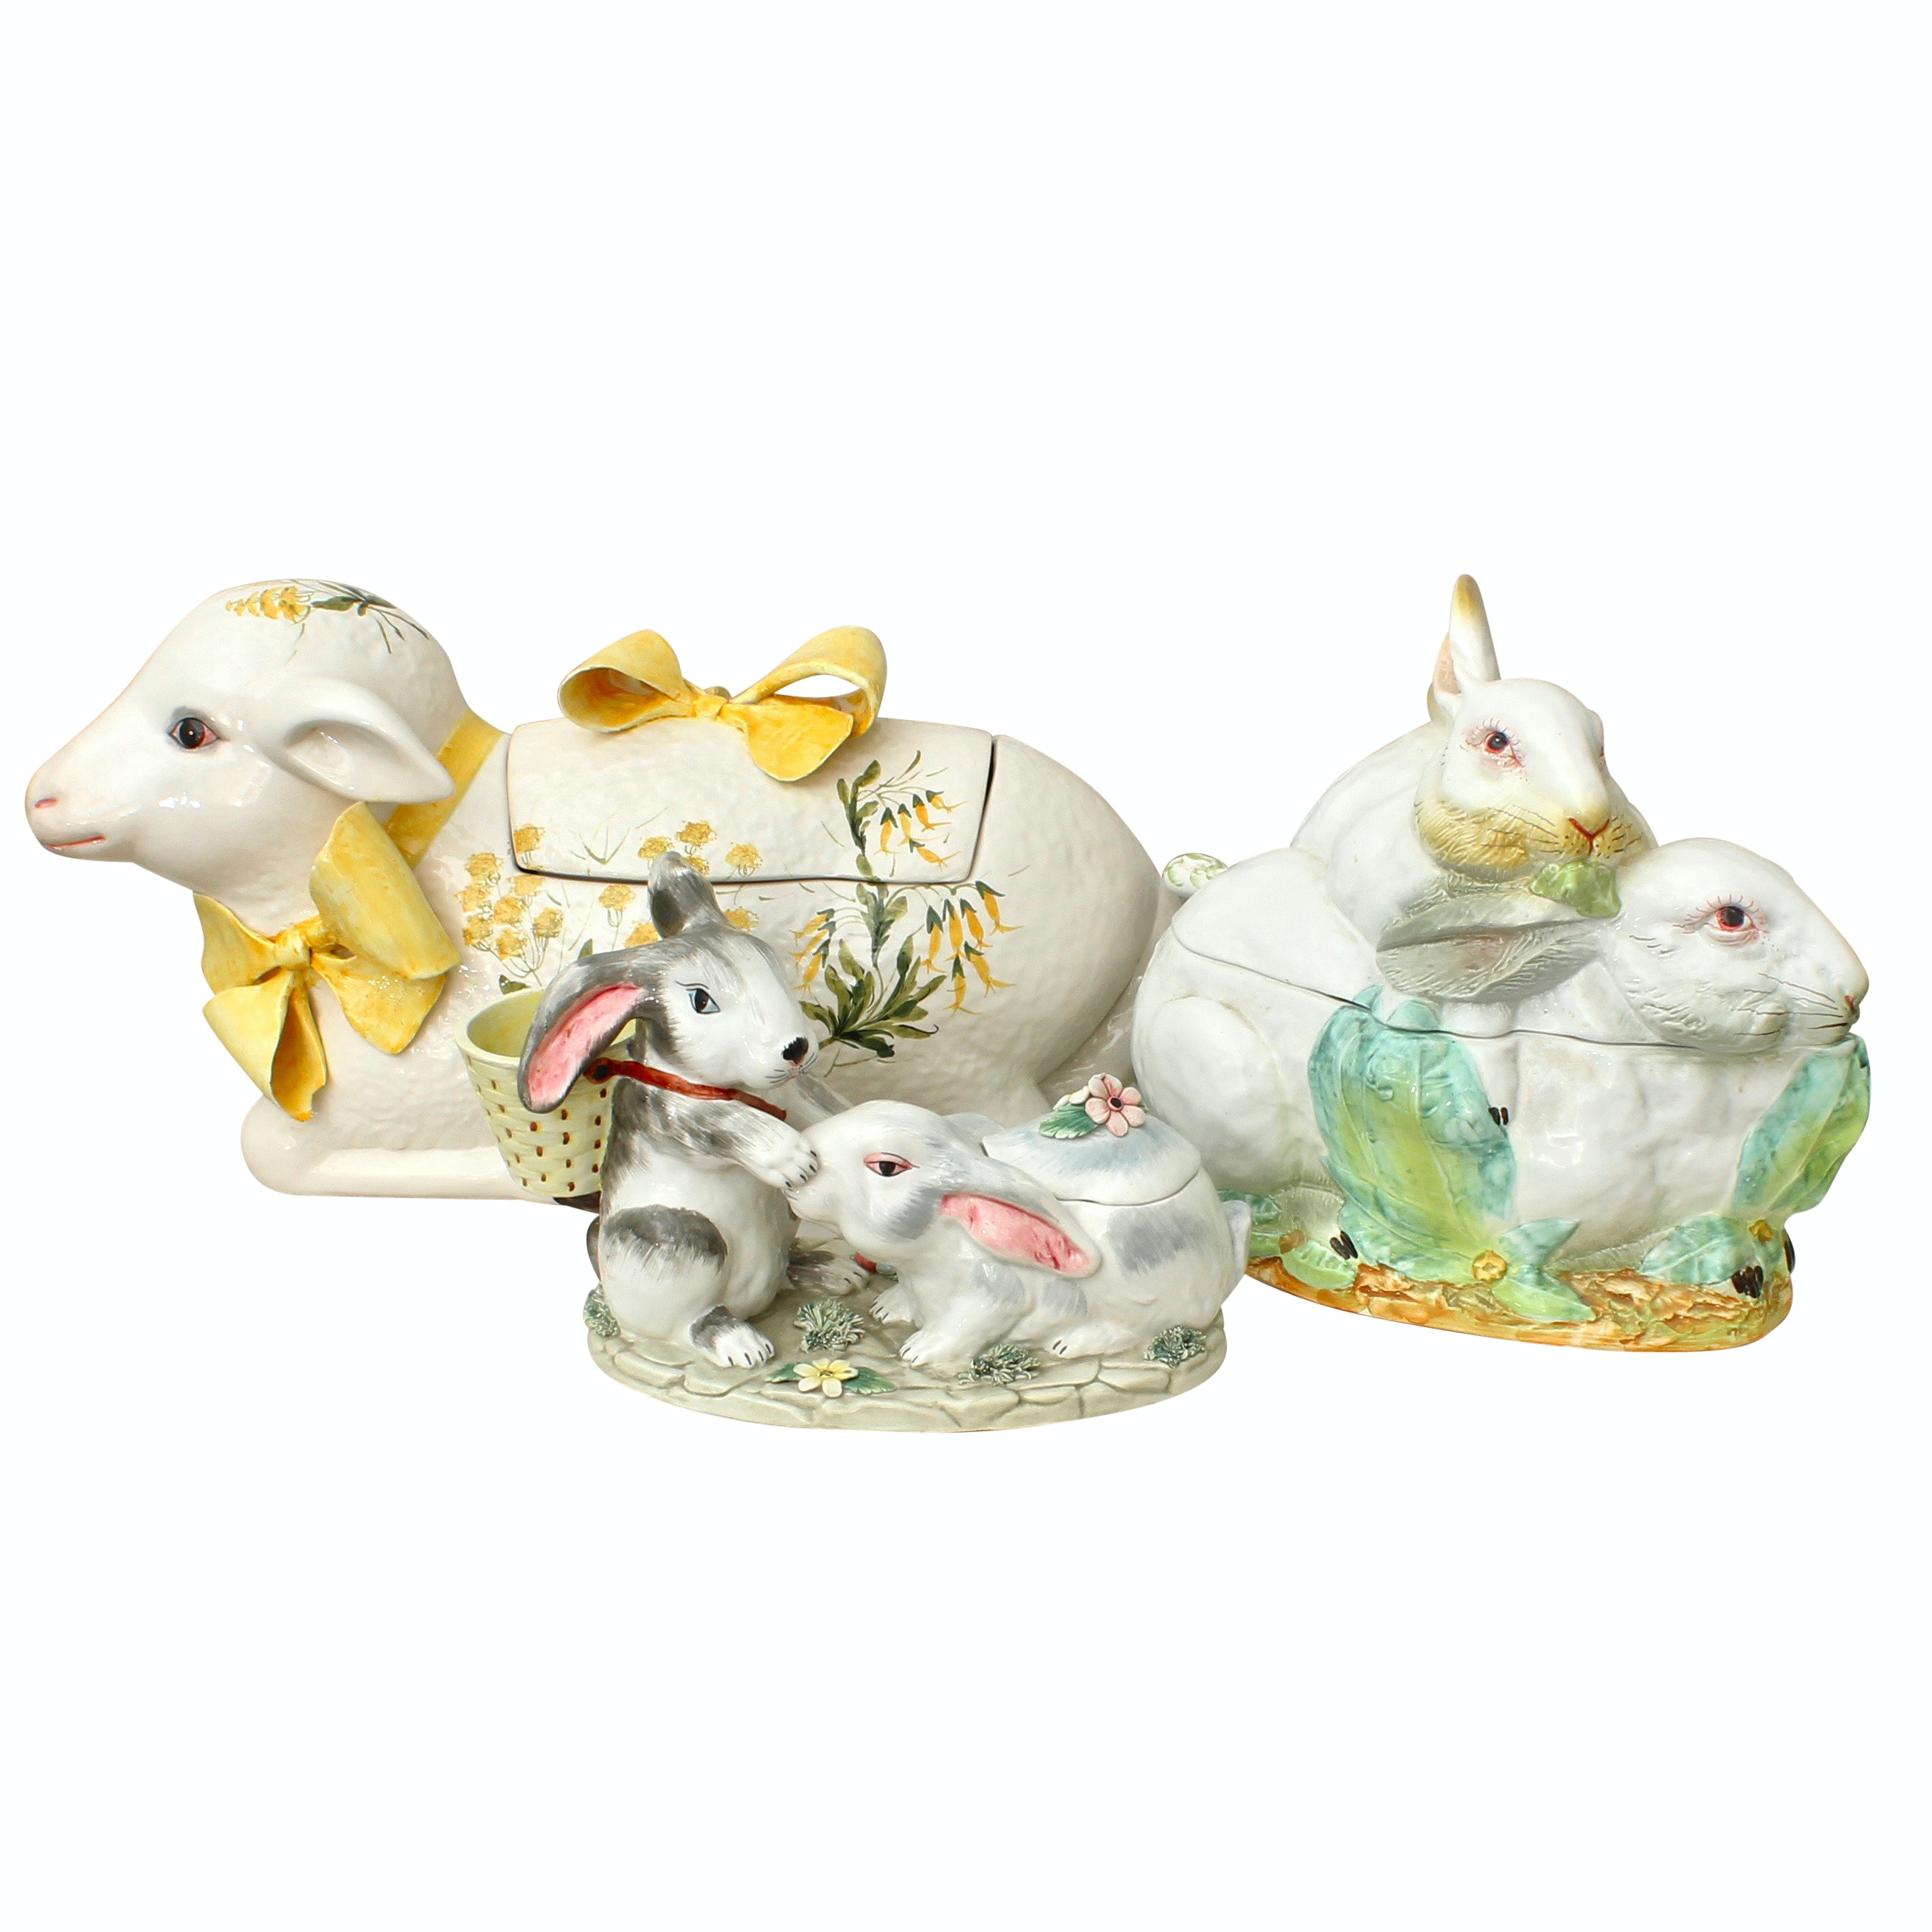 Three Italian Porcelain Tureens of Rabbits and Lamb